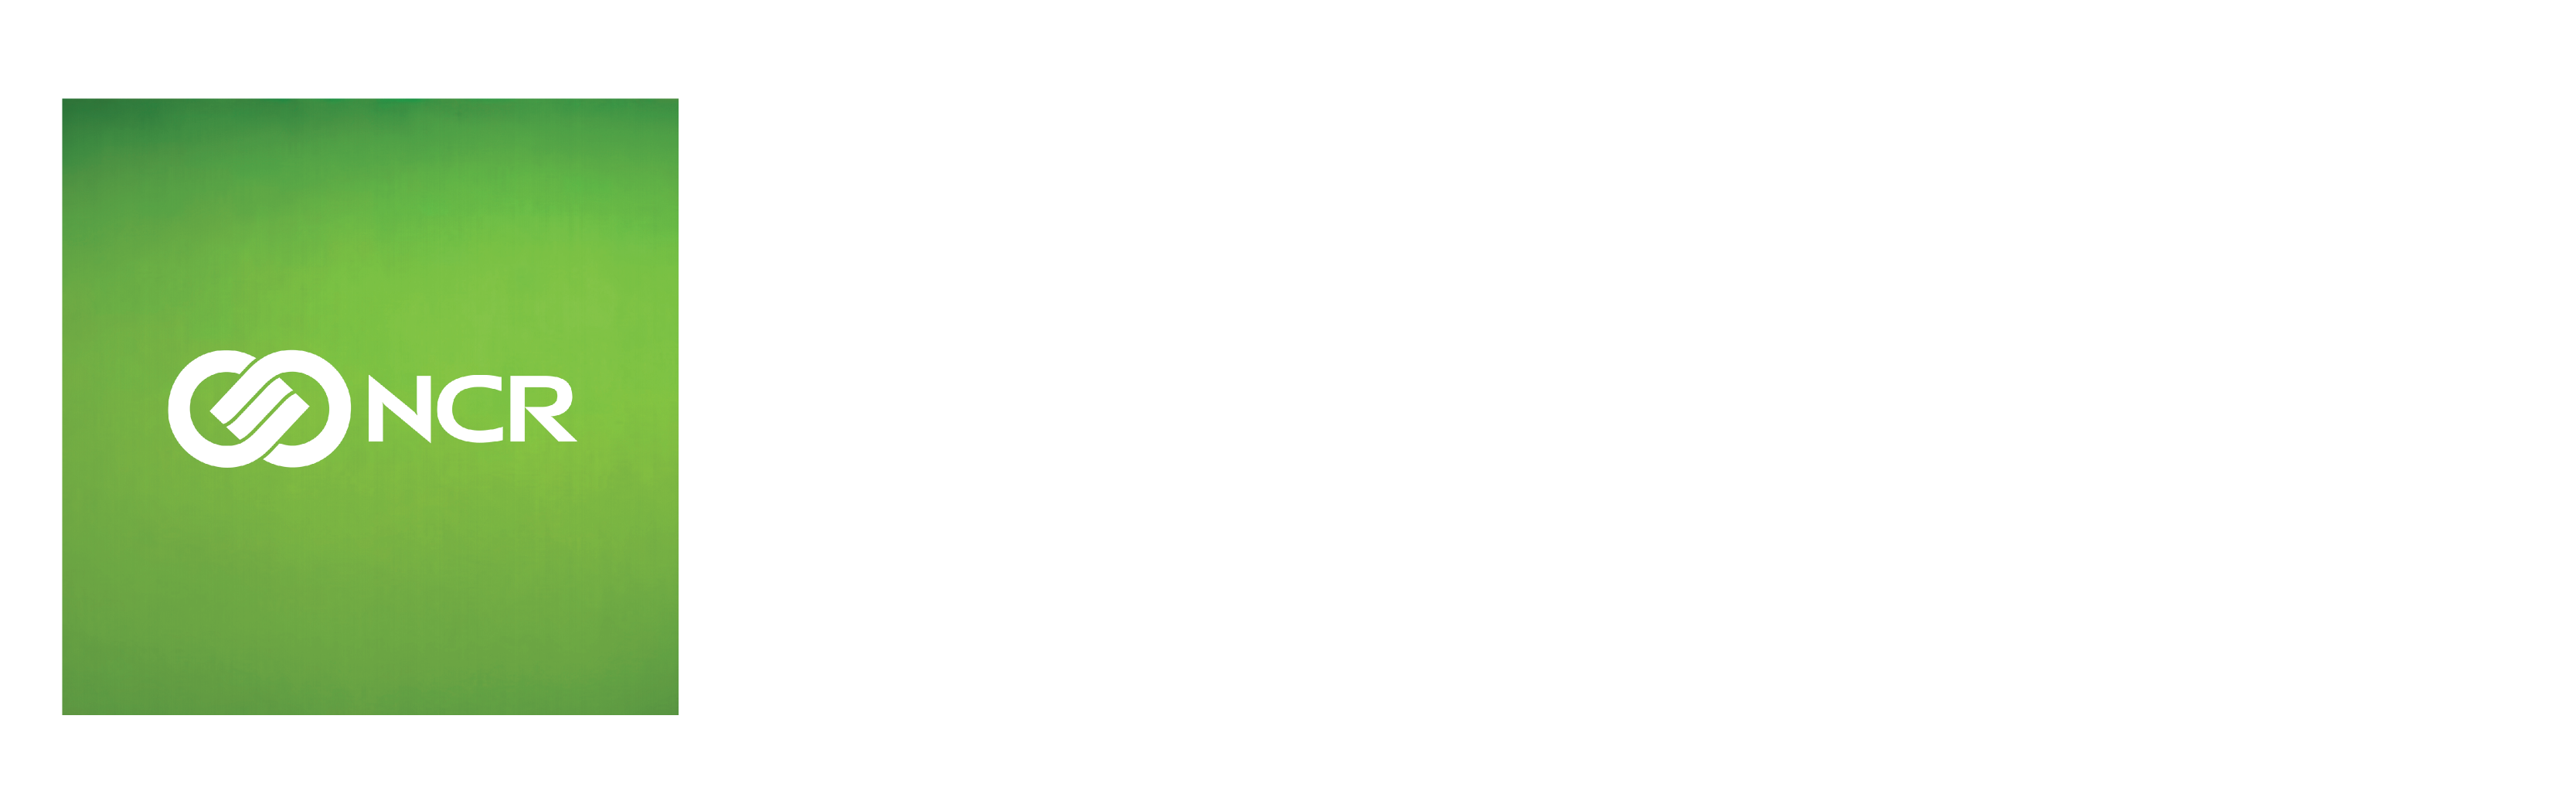 NCR Counterpoint Retail POS